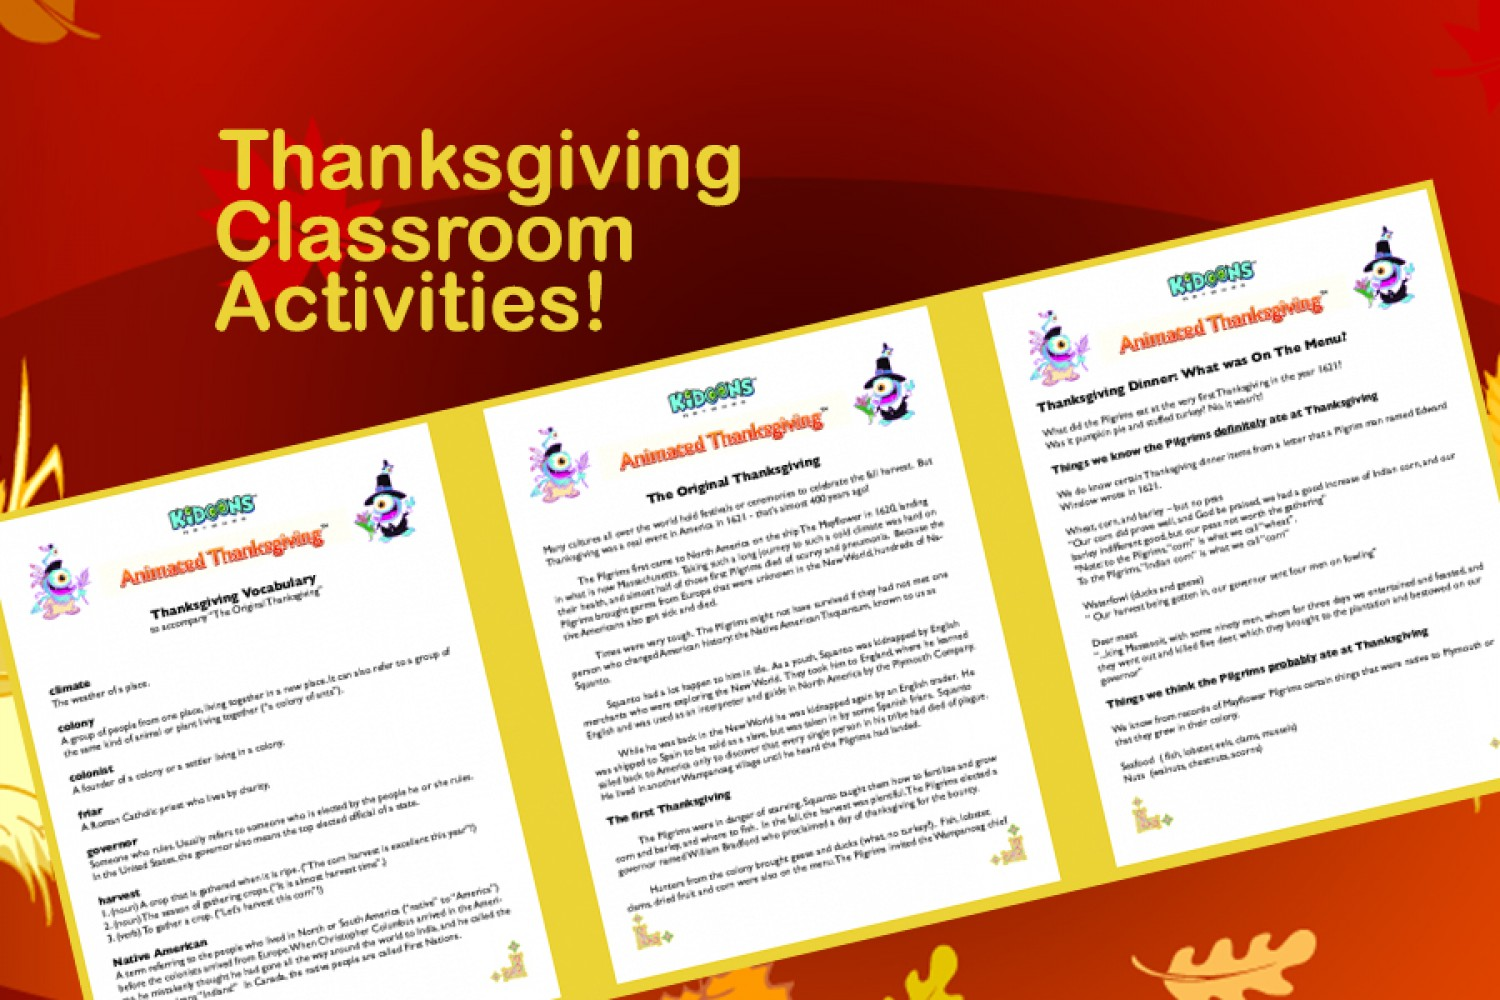 Classroom Ideas And Activities : Thanksgiving class activities for your students article